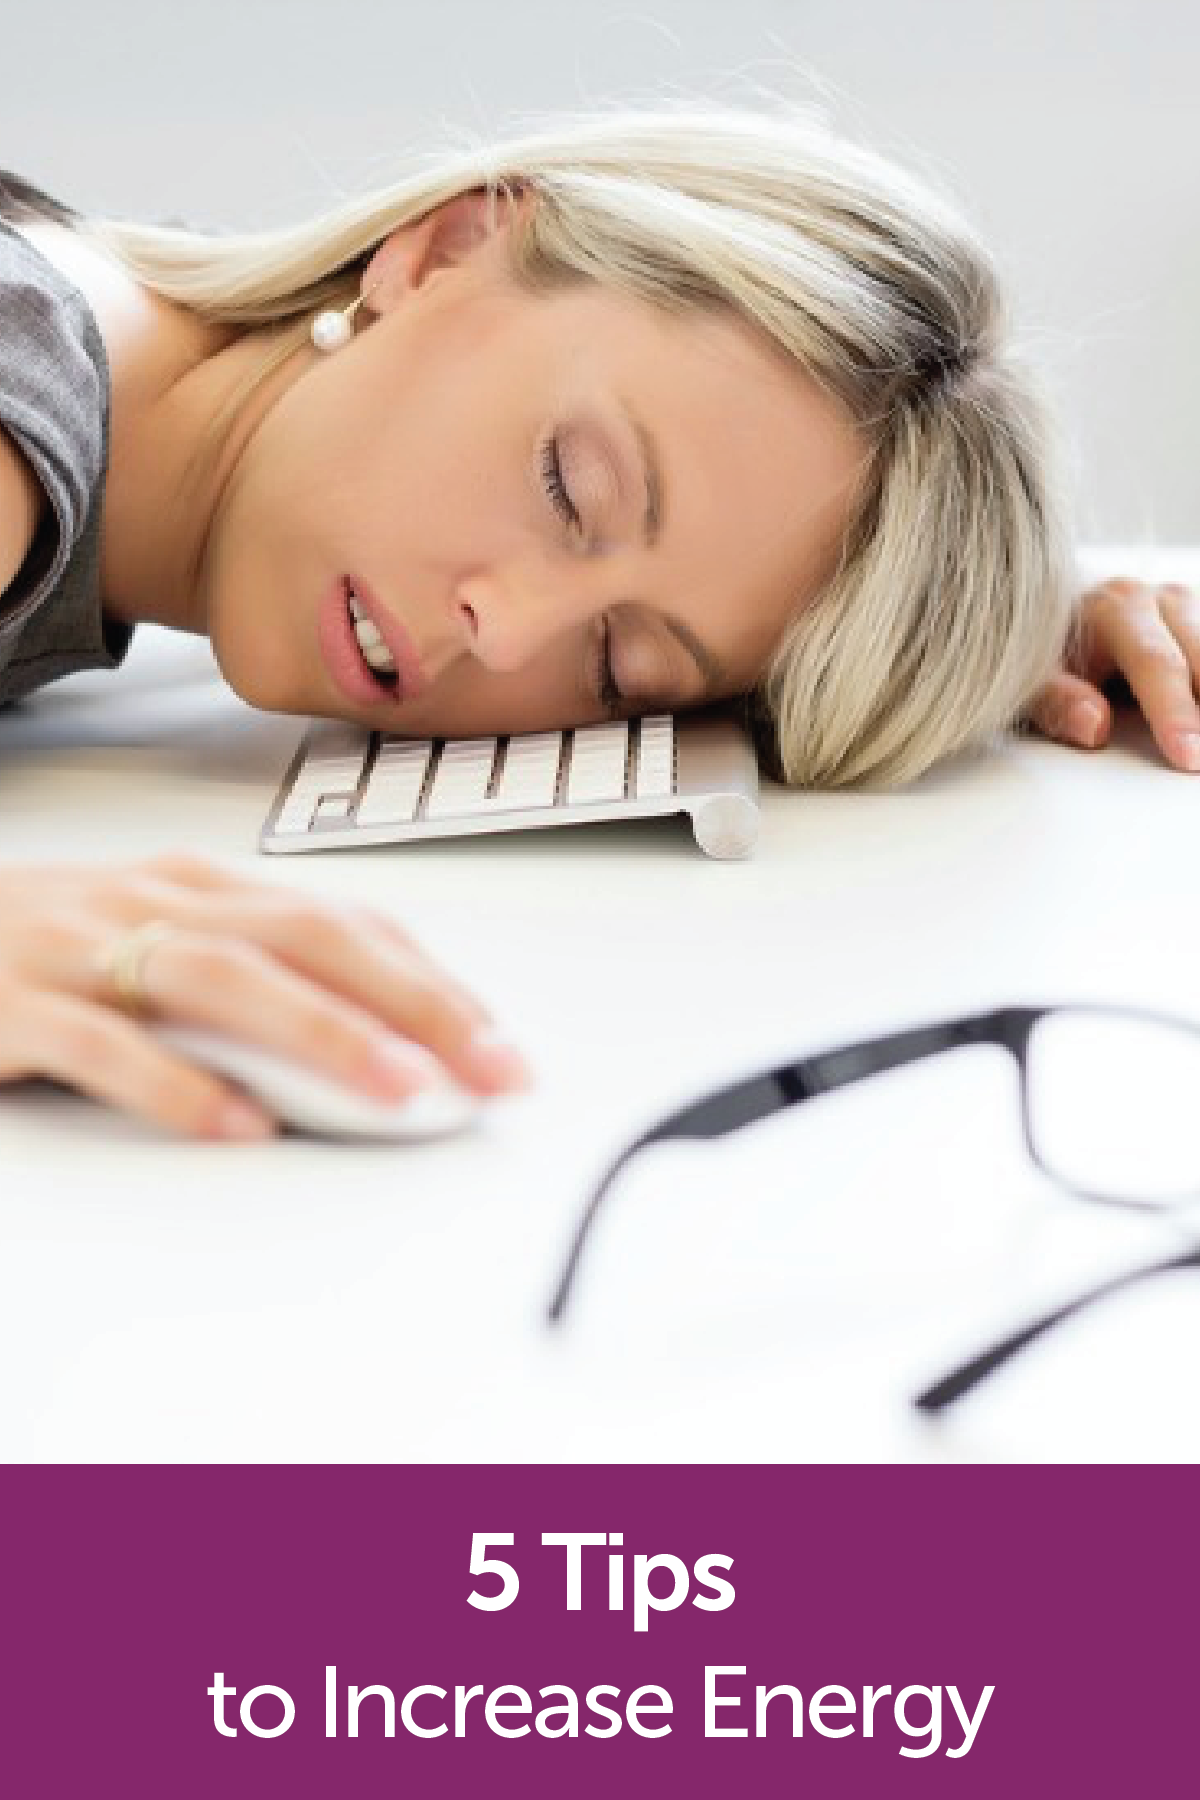 Why Am I So Tired 5 Tips To Increase Your Energy Chronic Fatigue Syndrome Chronic Fatigue Syndrome Diet Chronic Fatigue Symptoms